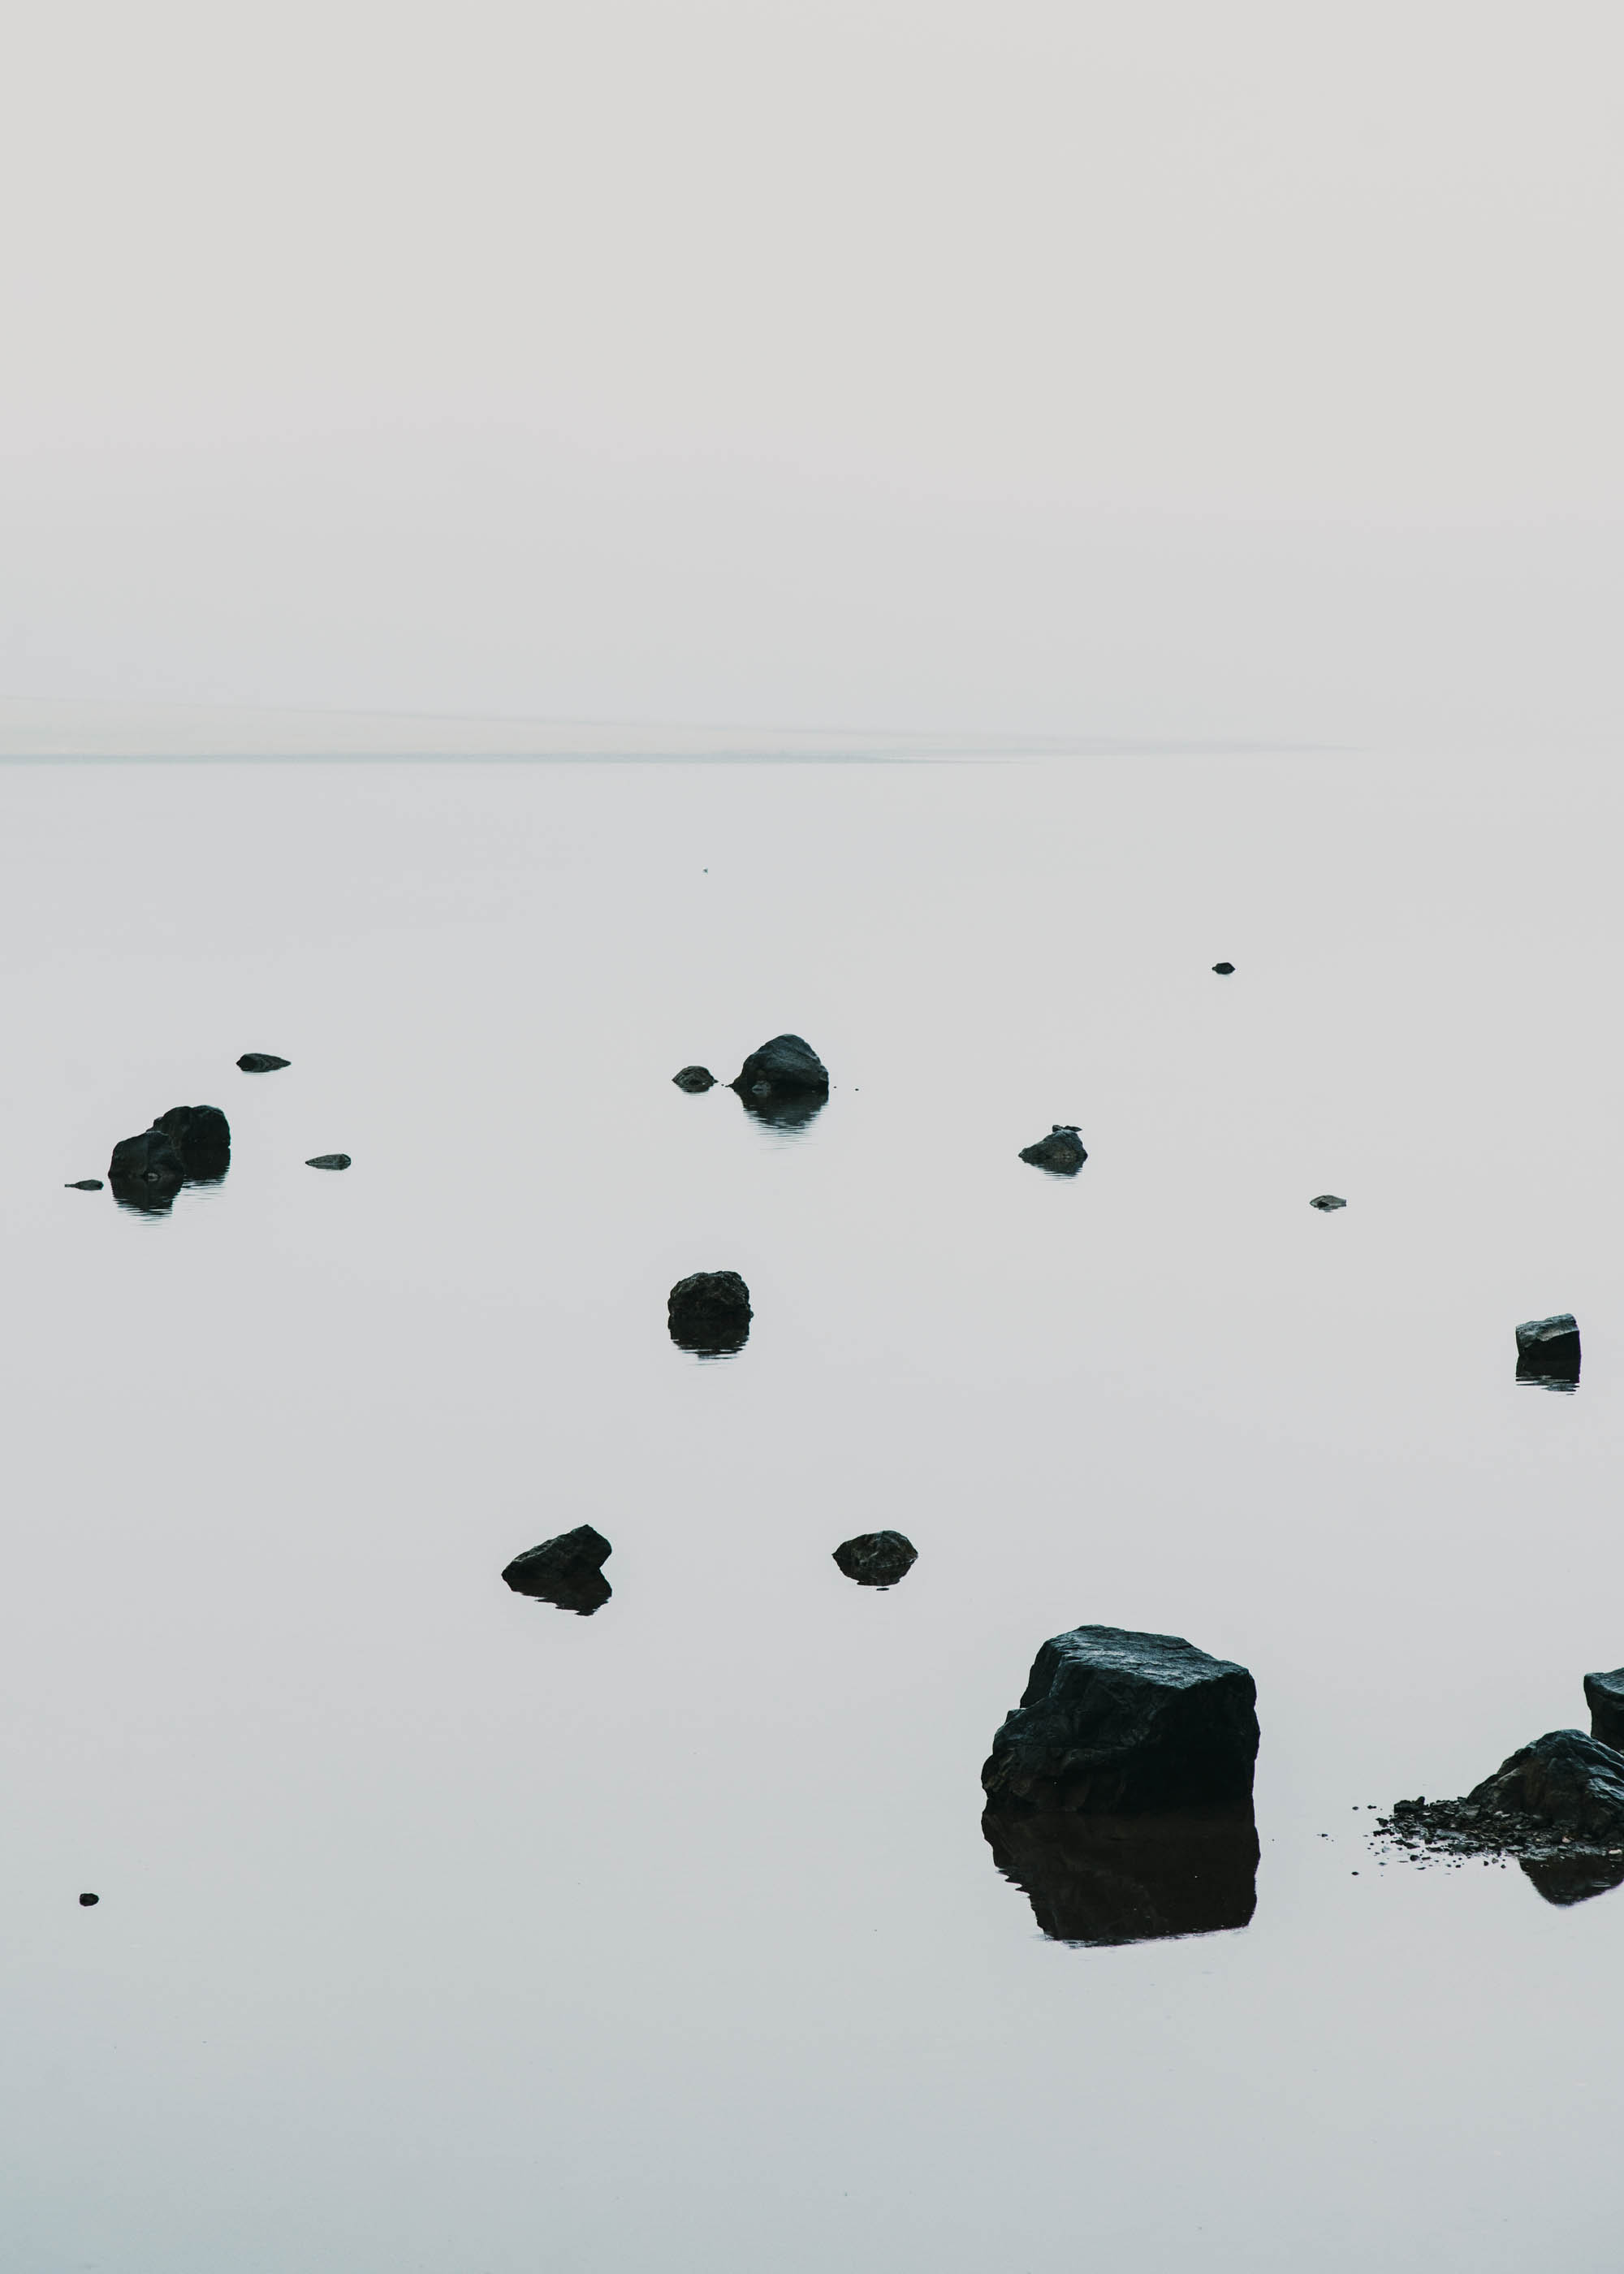 #1617 #personal #iceland #black #stones #rocks #sea